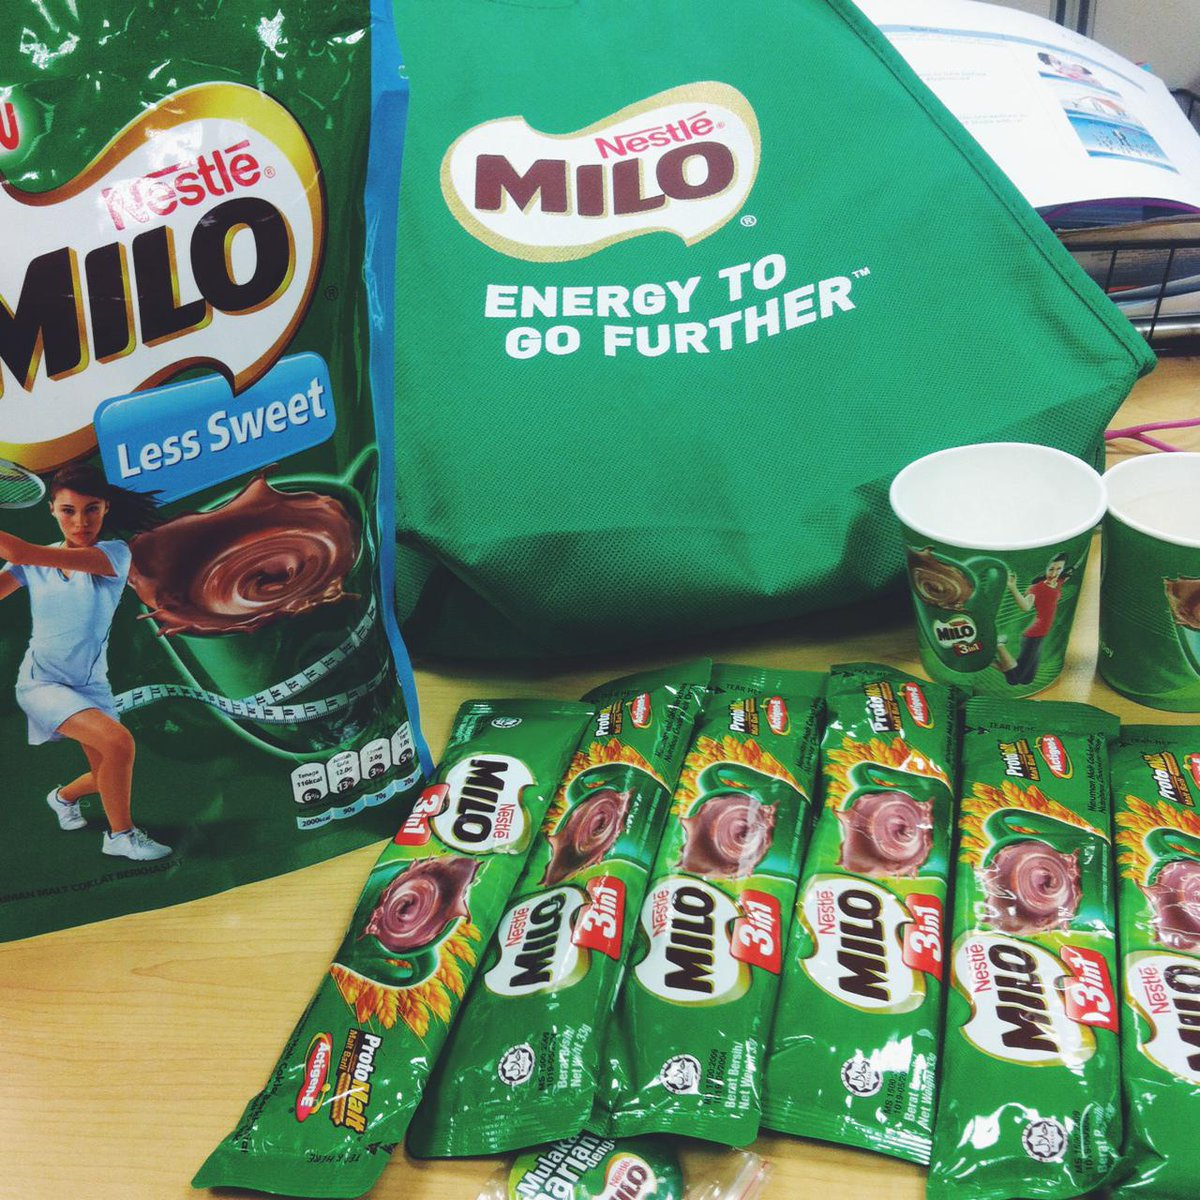 . @MiloMalaysia made my Friday today by flooding me and my team with loads of MILO! #MiloForAll #happydieme http://t.co/GuMSxvRWoD